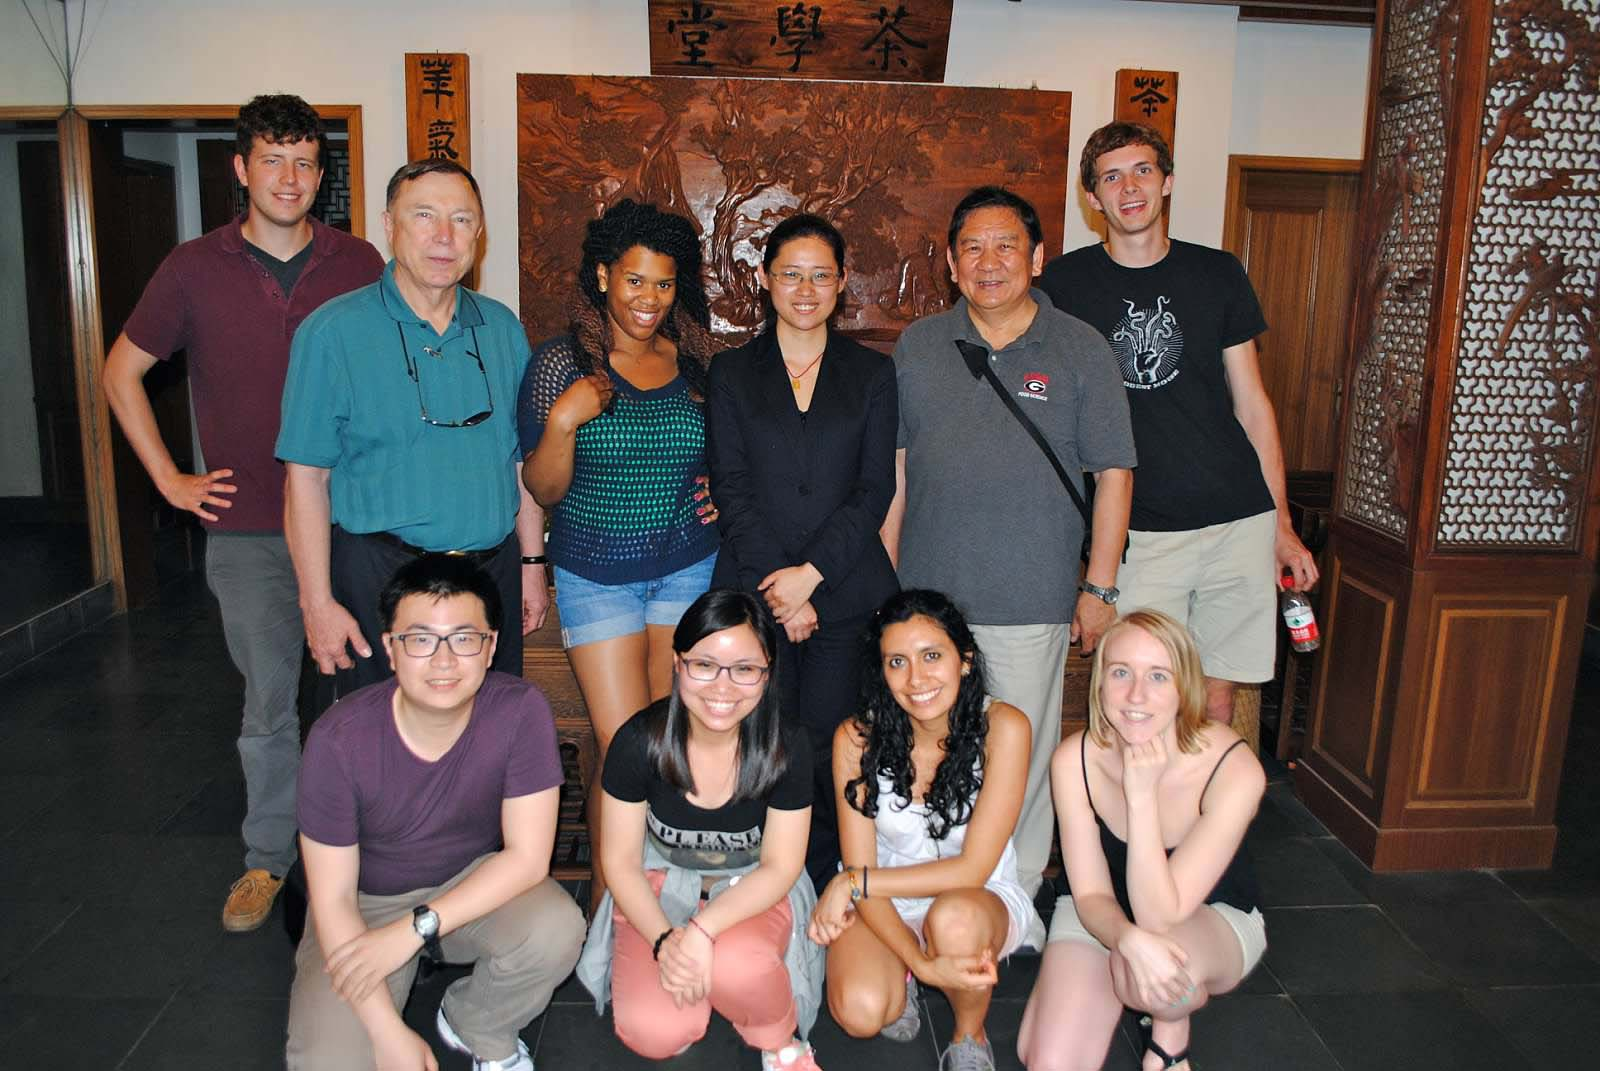 Participants of the CAES Global Food and Trade Study Abroad program in China.   Pictured at The National Tea Museum Hangzhou, Zhejiang Province China.  L-R (Back Row), Christopher Cole Crawford, Dr. Glen Ames, Charnae Ross, Tea Professor from Tea Museum, Dr. Yao-wen Huang, David Rospond  L-R (Front Row) Xiameng Wu, XX (student from Shanghai Ocean University), Grace Melo Guerrero and Lauren Hudson